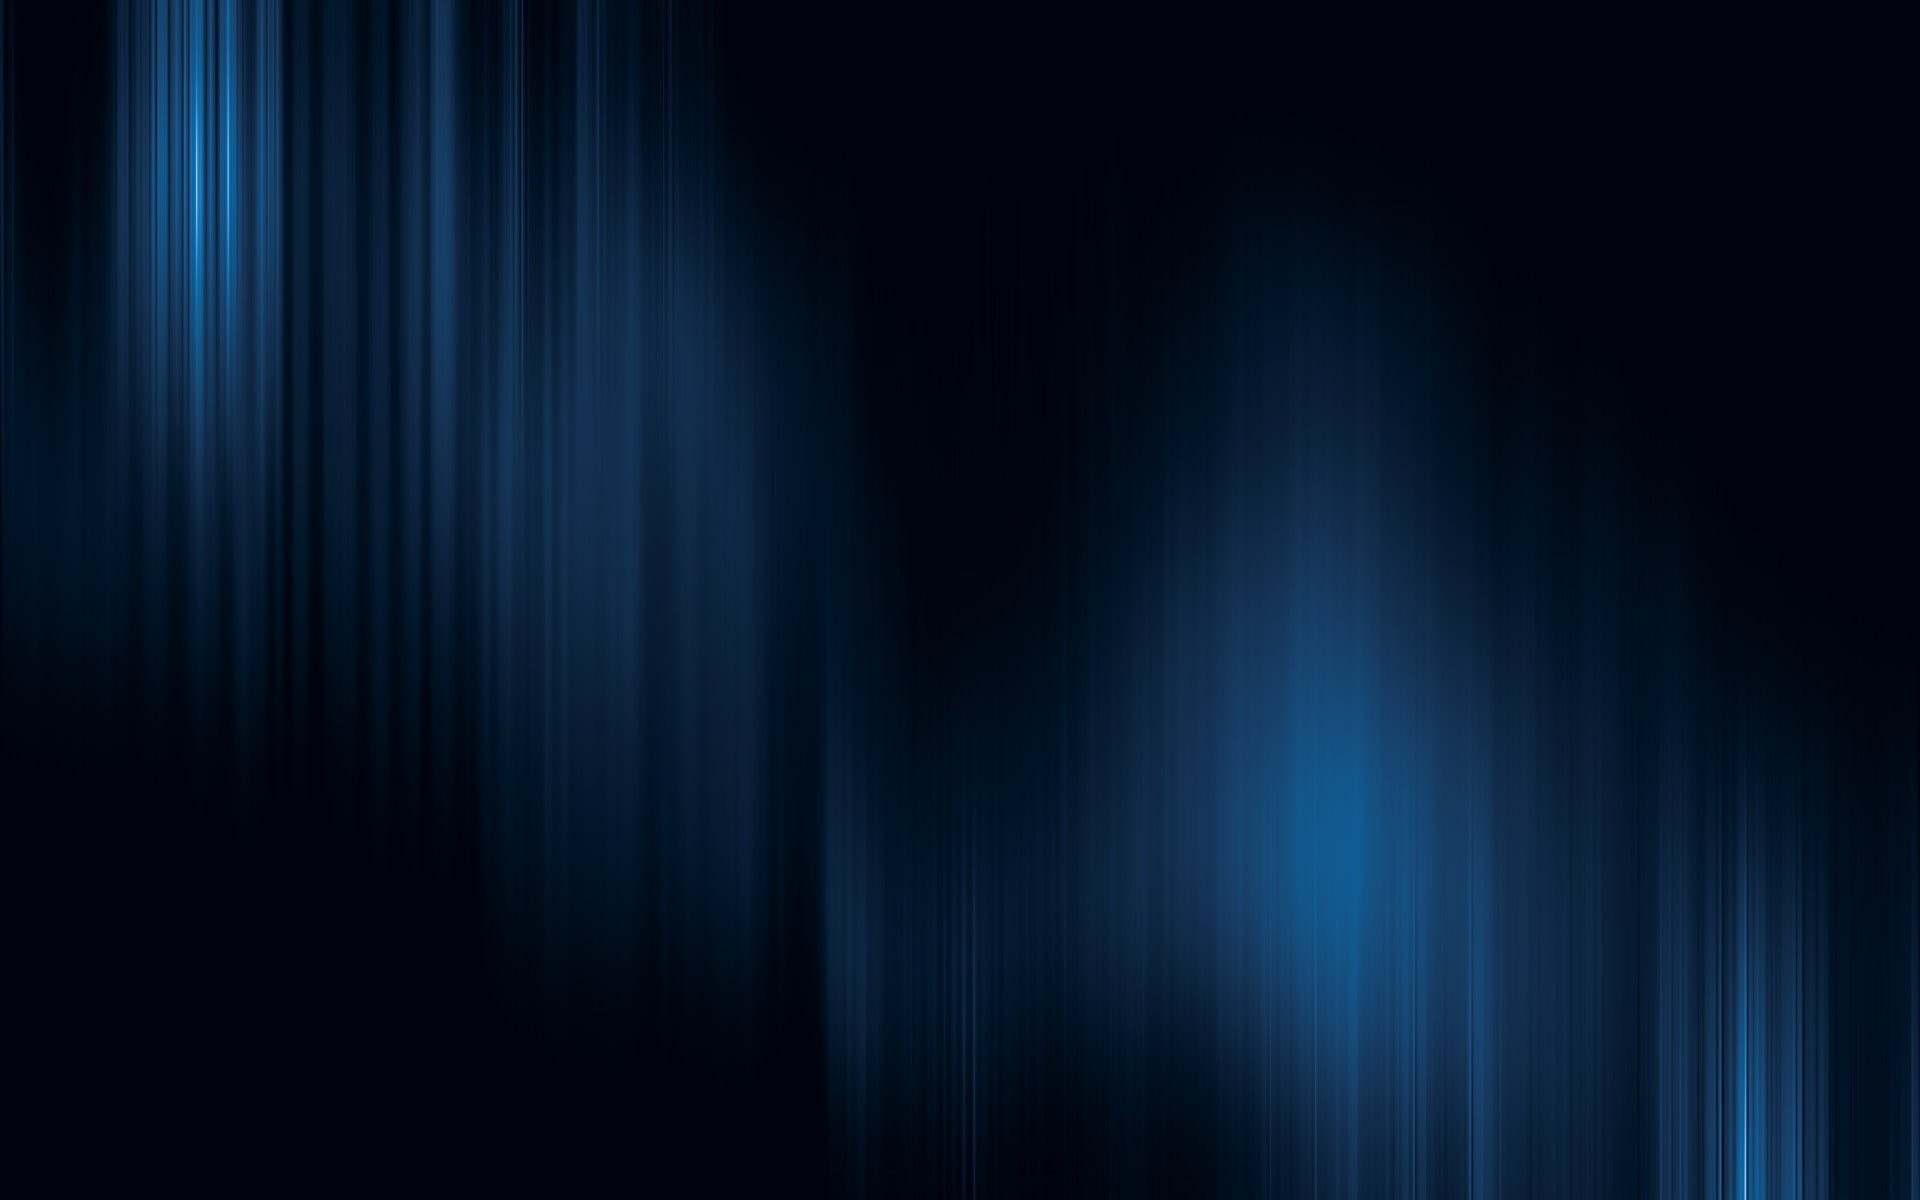 Sci Fi Wallpaper Hd Black And Blue Backgrounds 68 Images